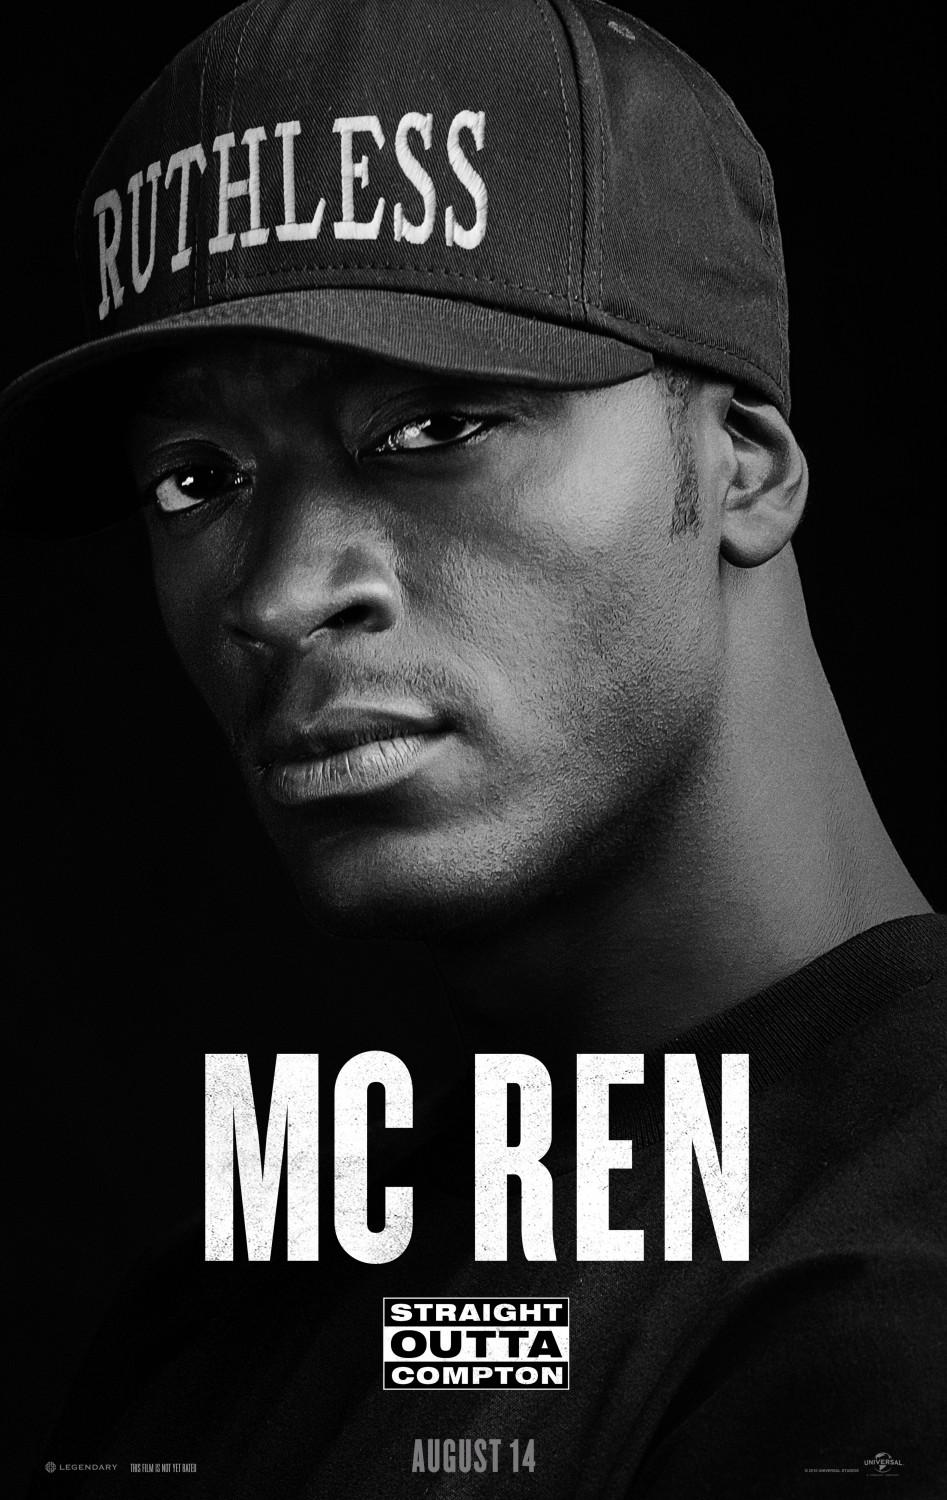 Straight outta Compton - film music poster - MC REN